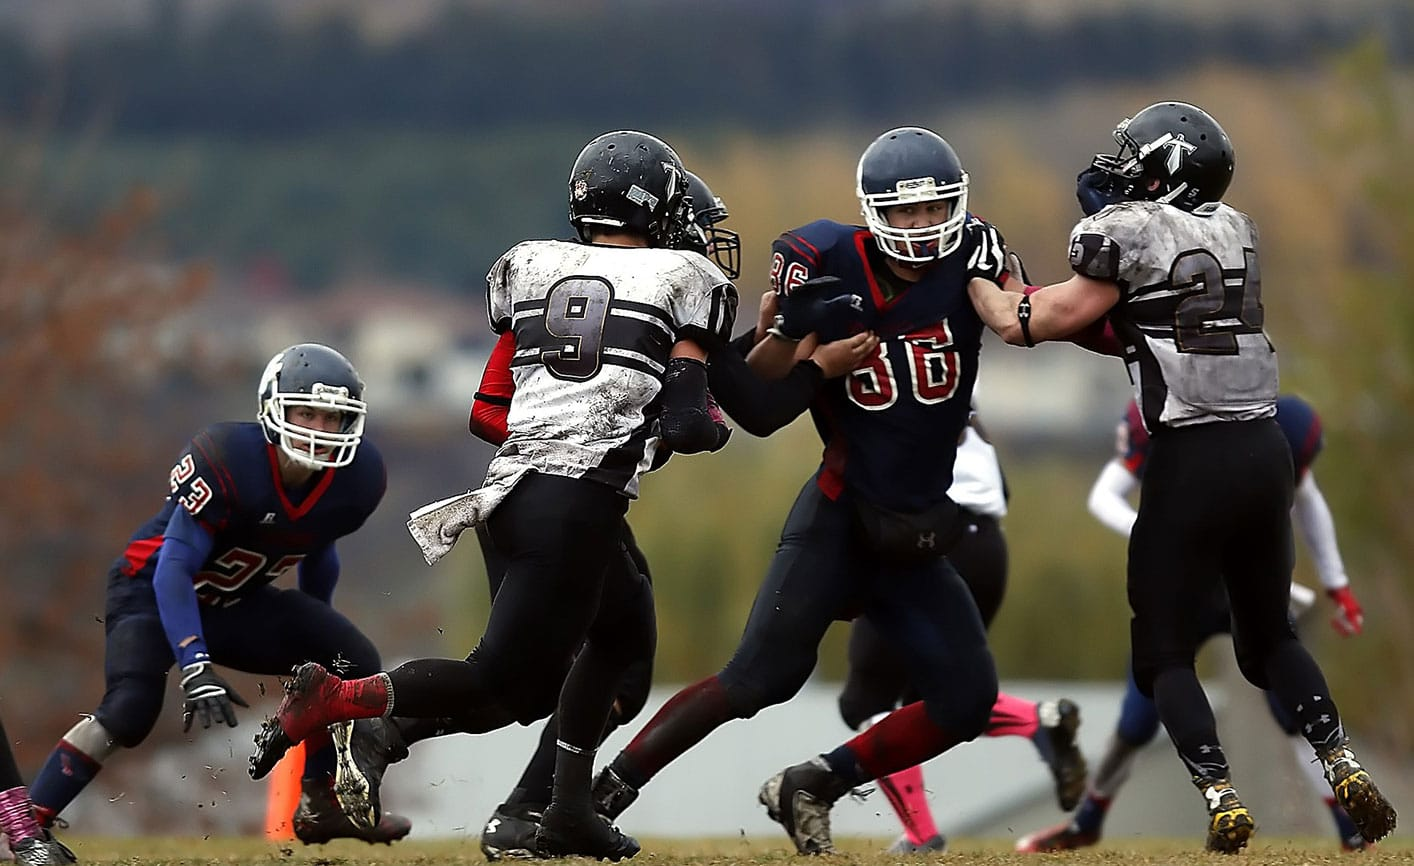 Dr. Shelina Babul part of pan-Canadian NFL-funded study on concussion in youth